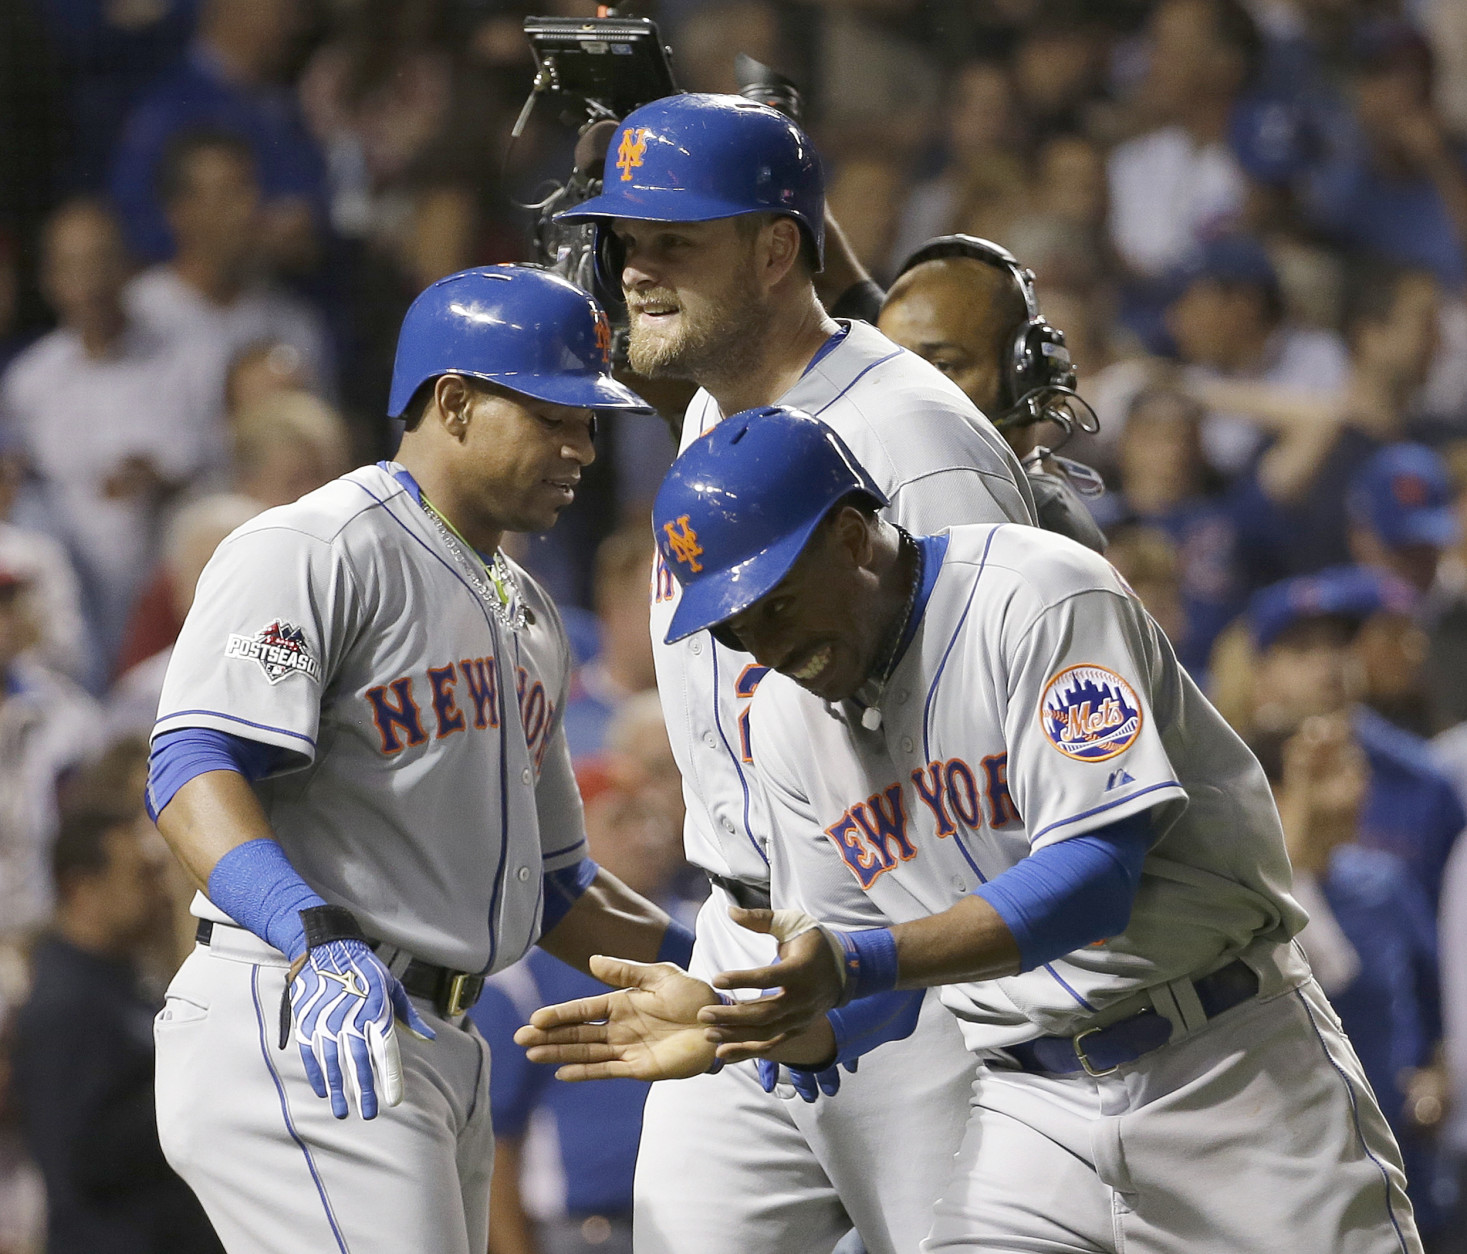 New York Mets' Lucas Duda is congratulated by Yoenis Cespedes, left, and Curtis Granderson, right, after hitting a three-run home run during the first inning of Game 4 of the National League baseball championship series against the Chicago Cubs Wednesday, Oct. 21, 2015, in Chicago. (AP Photo/David J. Phillip)